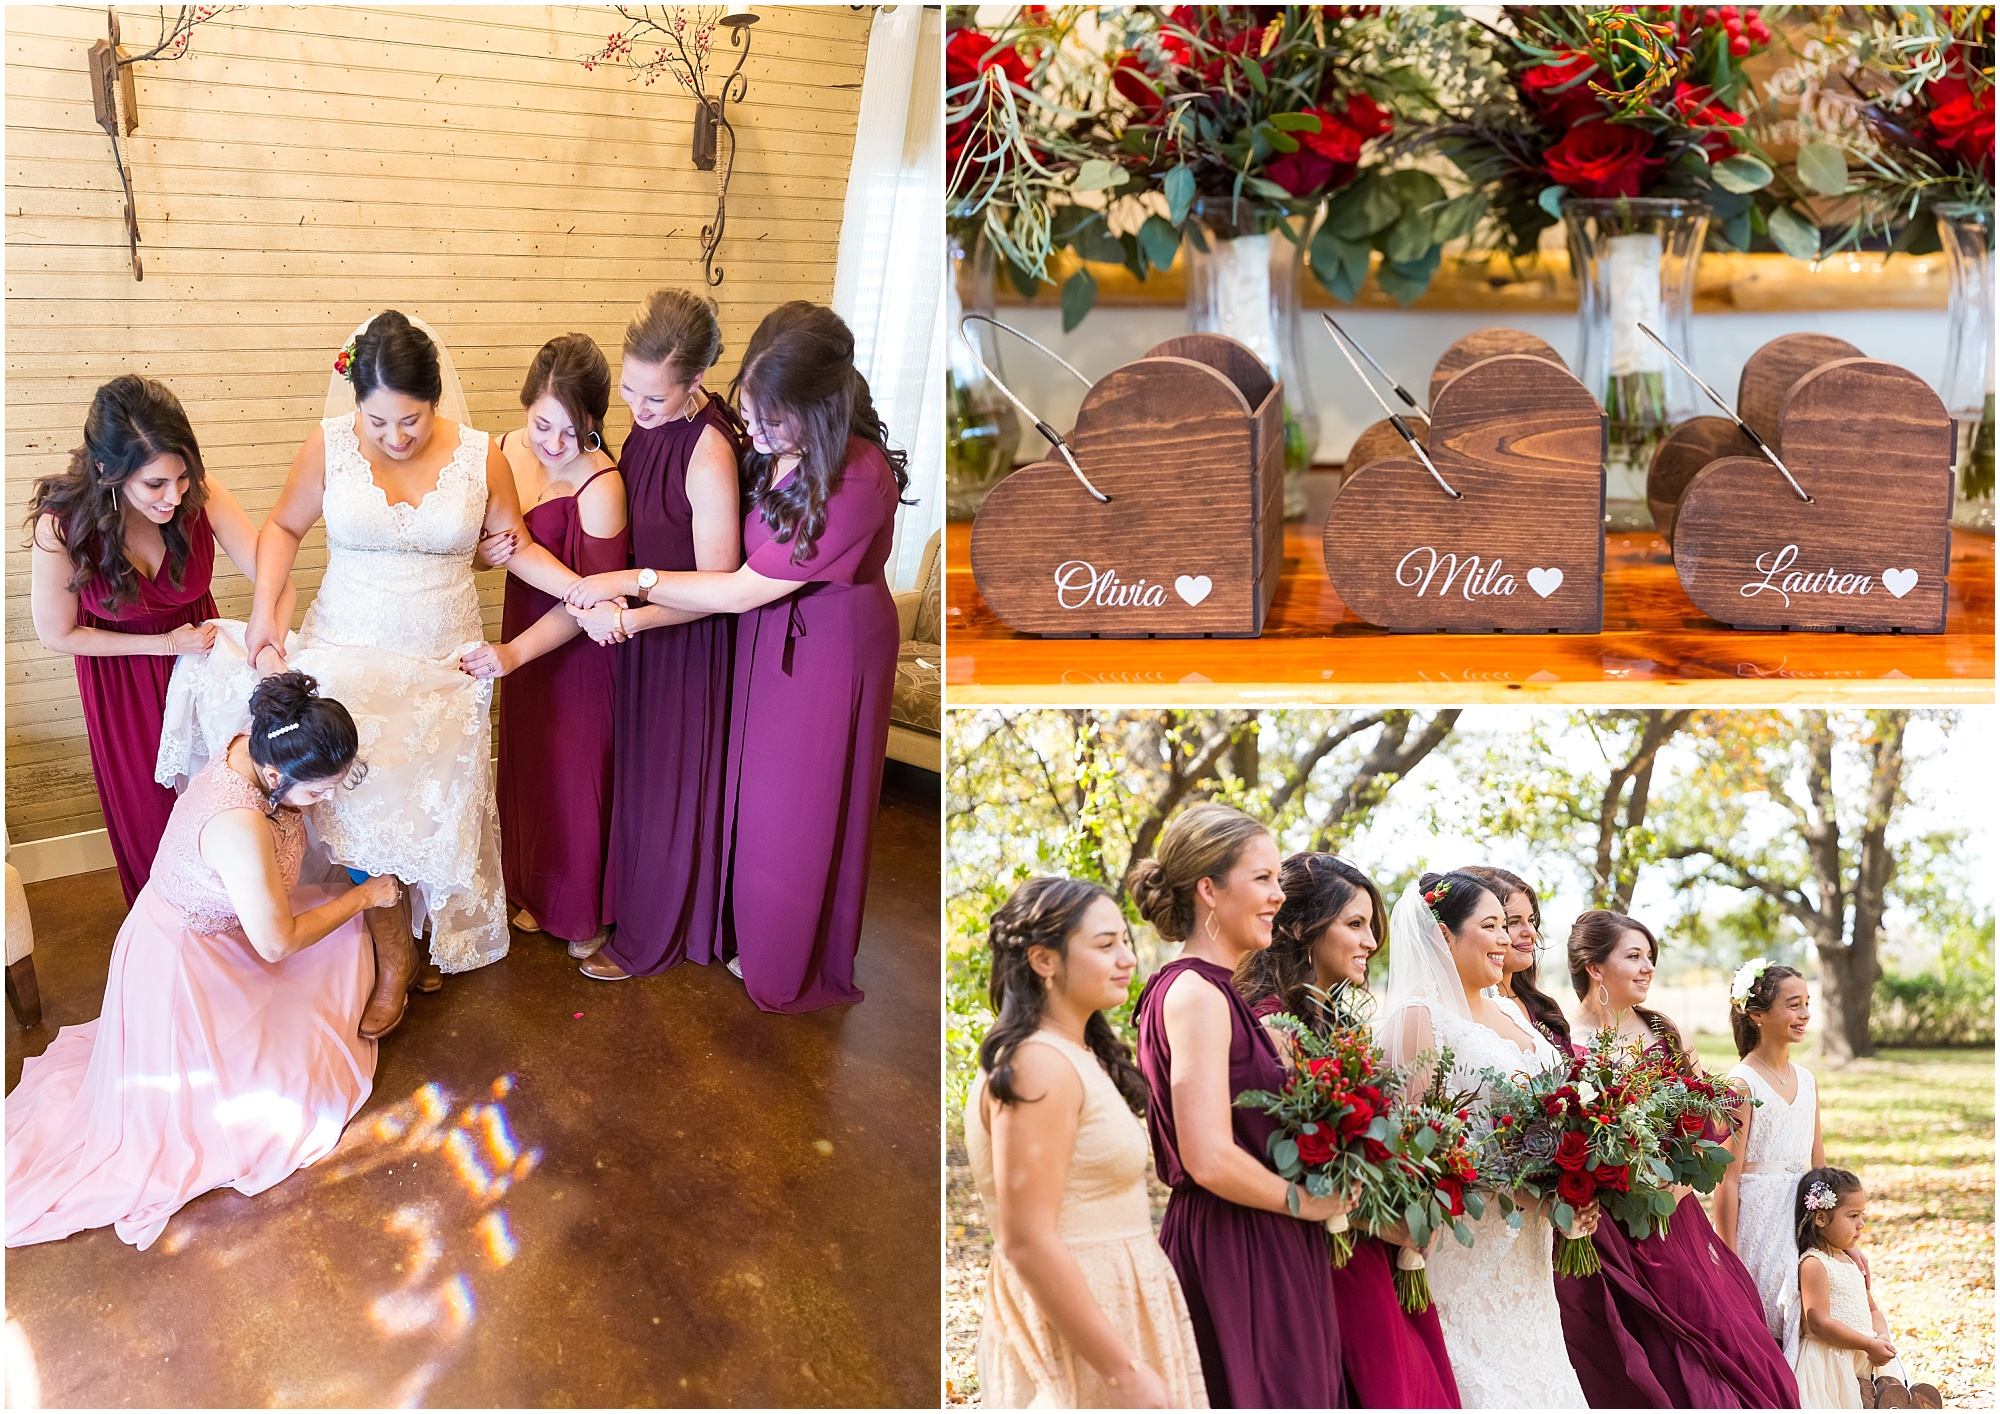 Fall wedding- Dove Creek Ranch in Dublin, Texas - Jason & Melaina Photography - www.jasonandmelaina.com